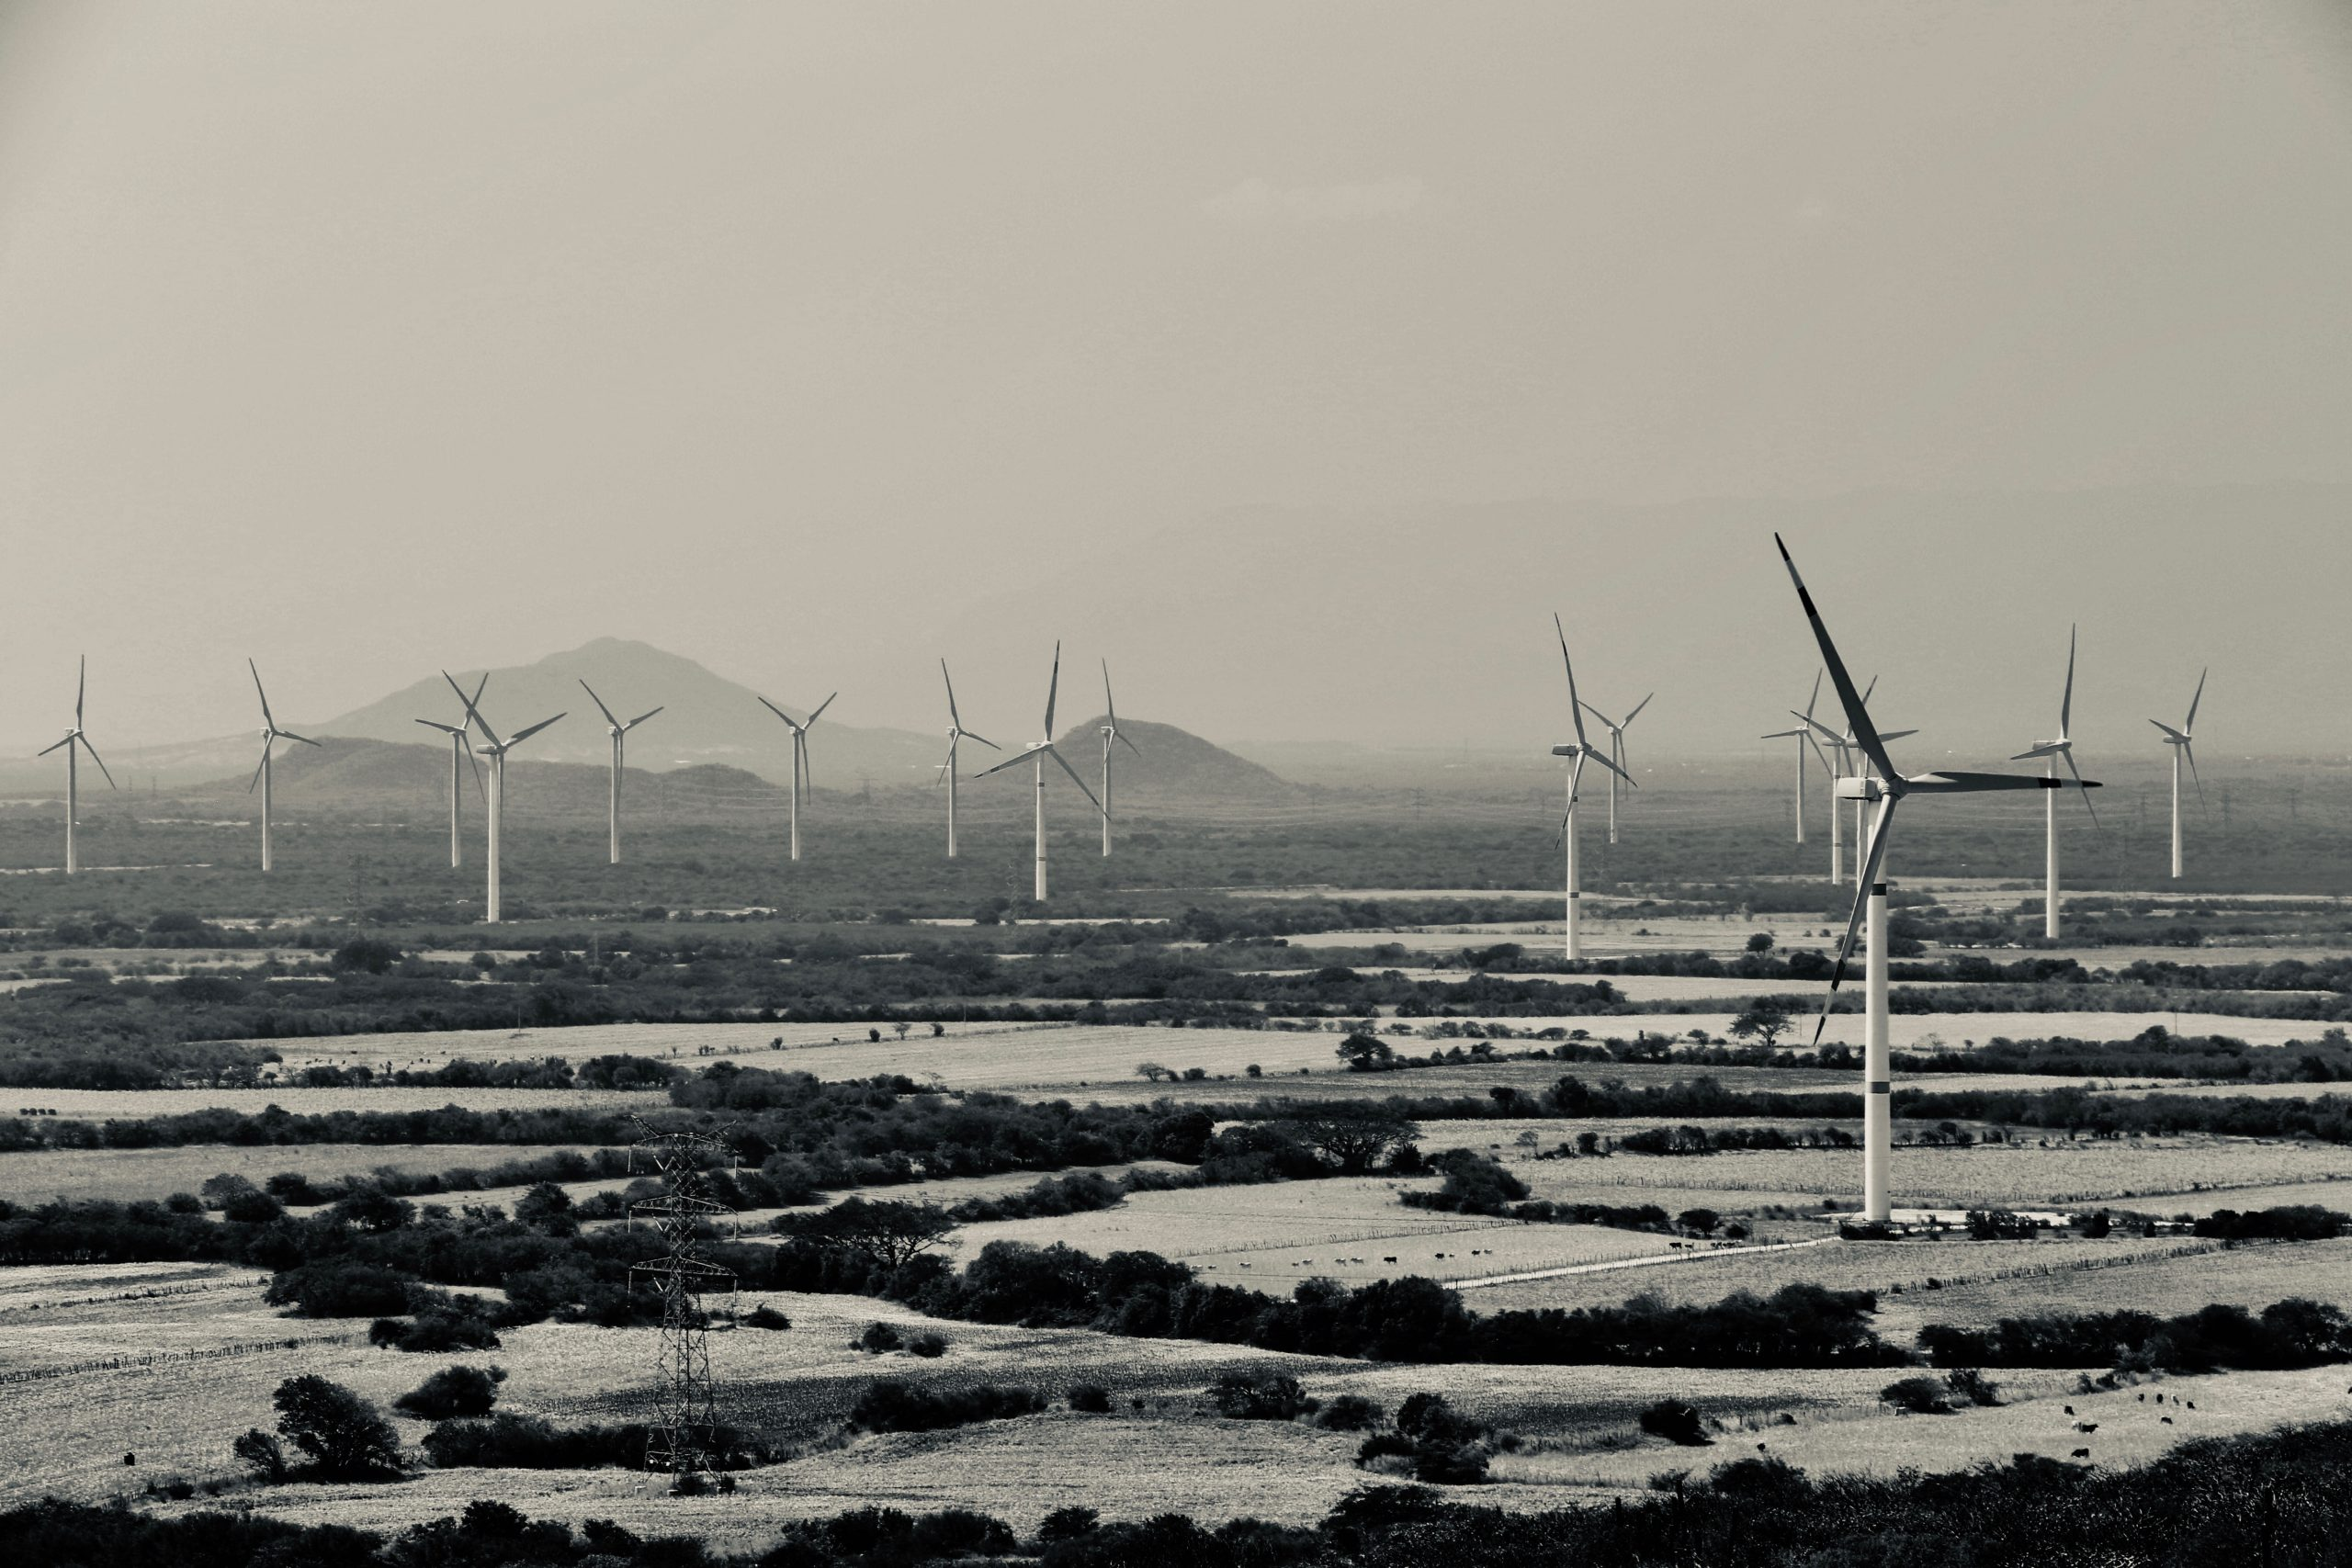 black and white image of wind farms